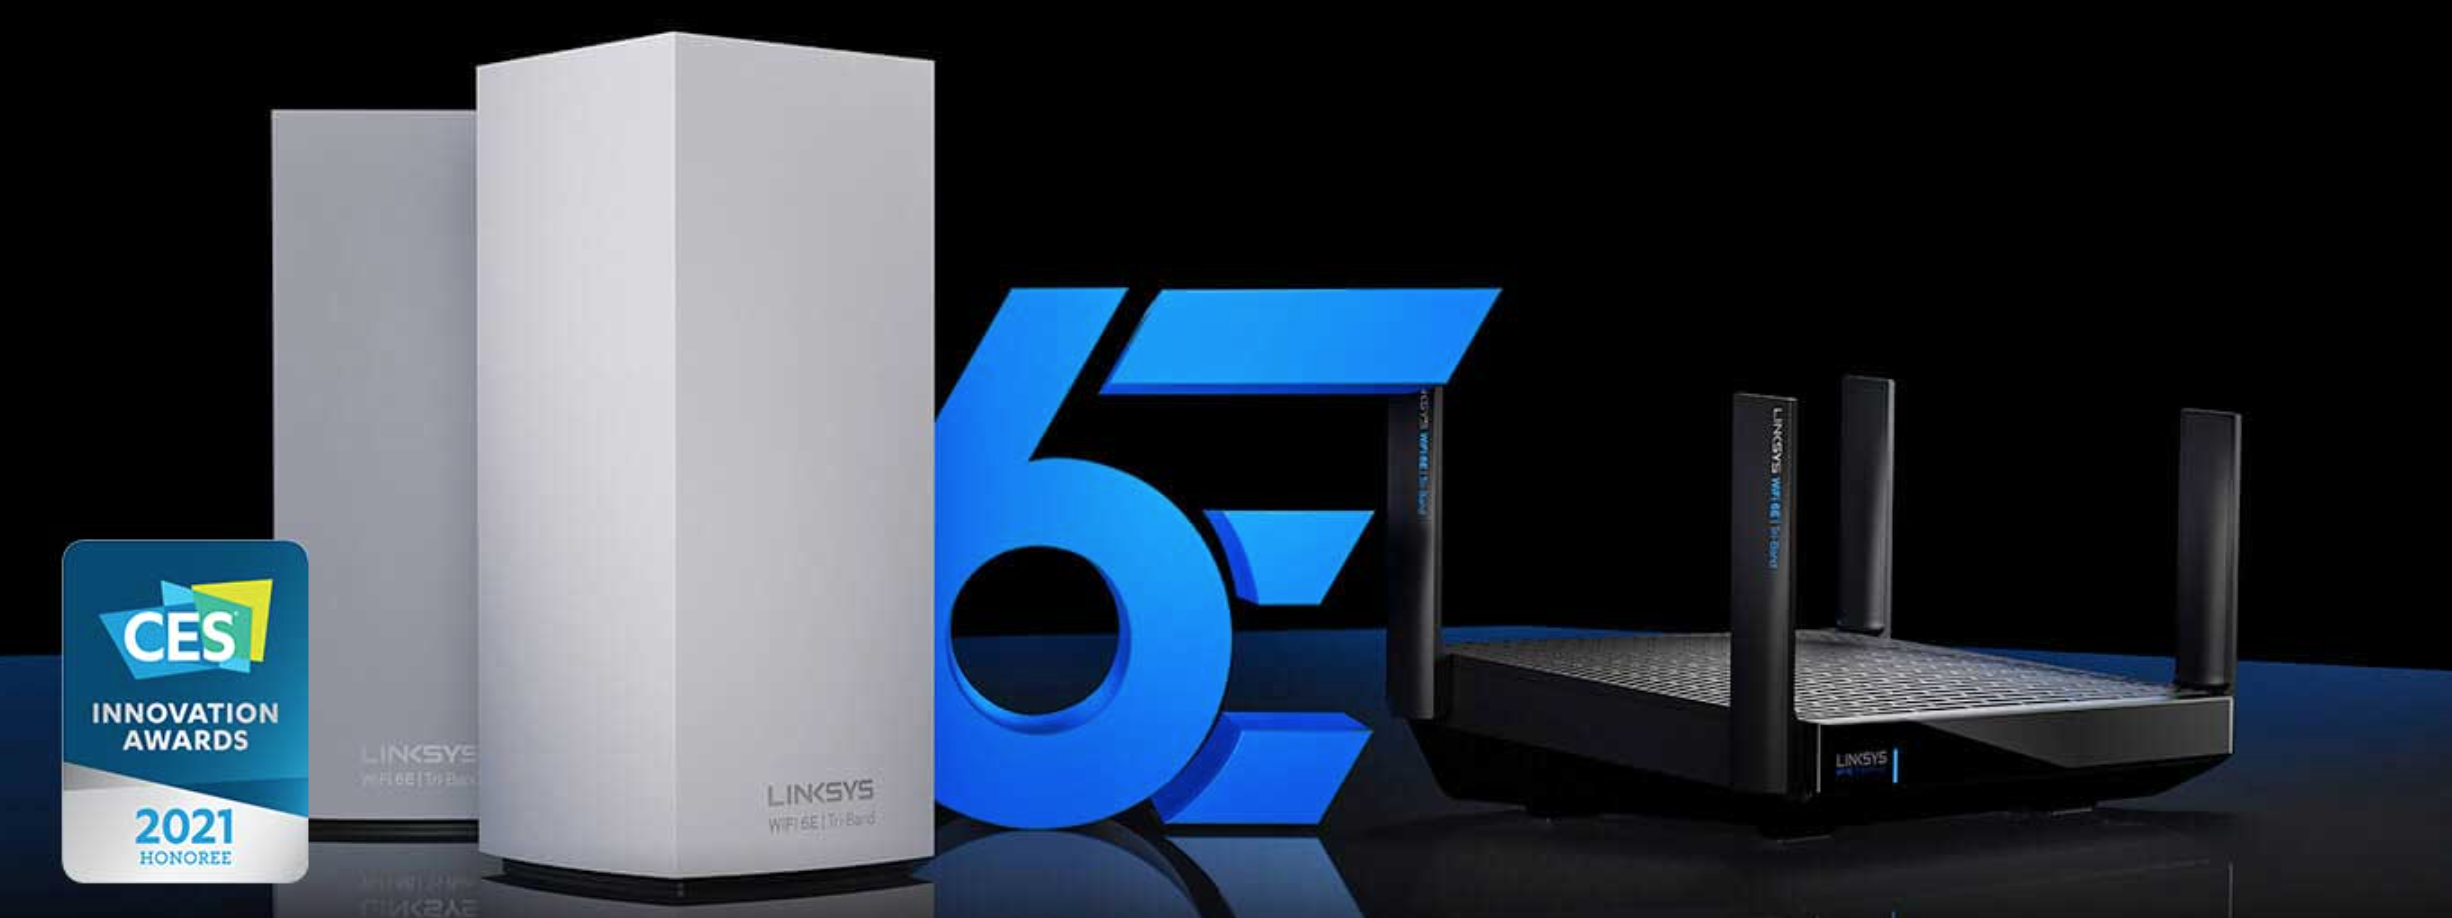 Breaking At Ces Linksys Launches World S First Wi Fi 6e Mesh Router Wi Fi Now Global